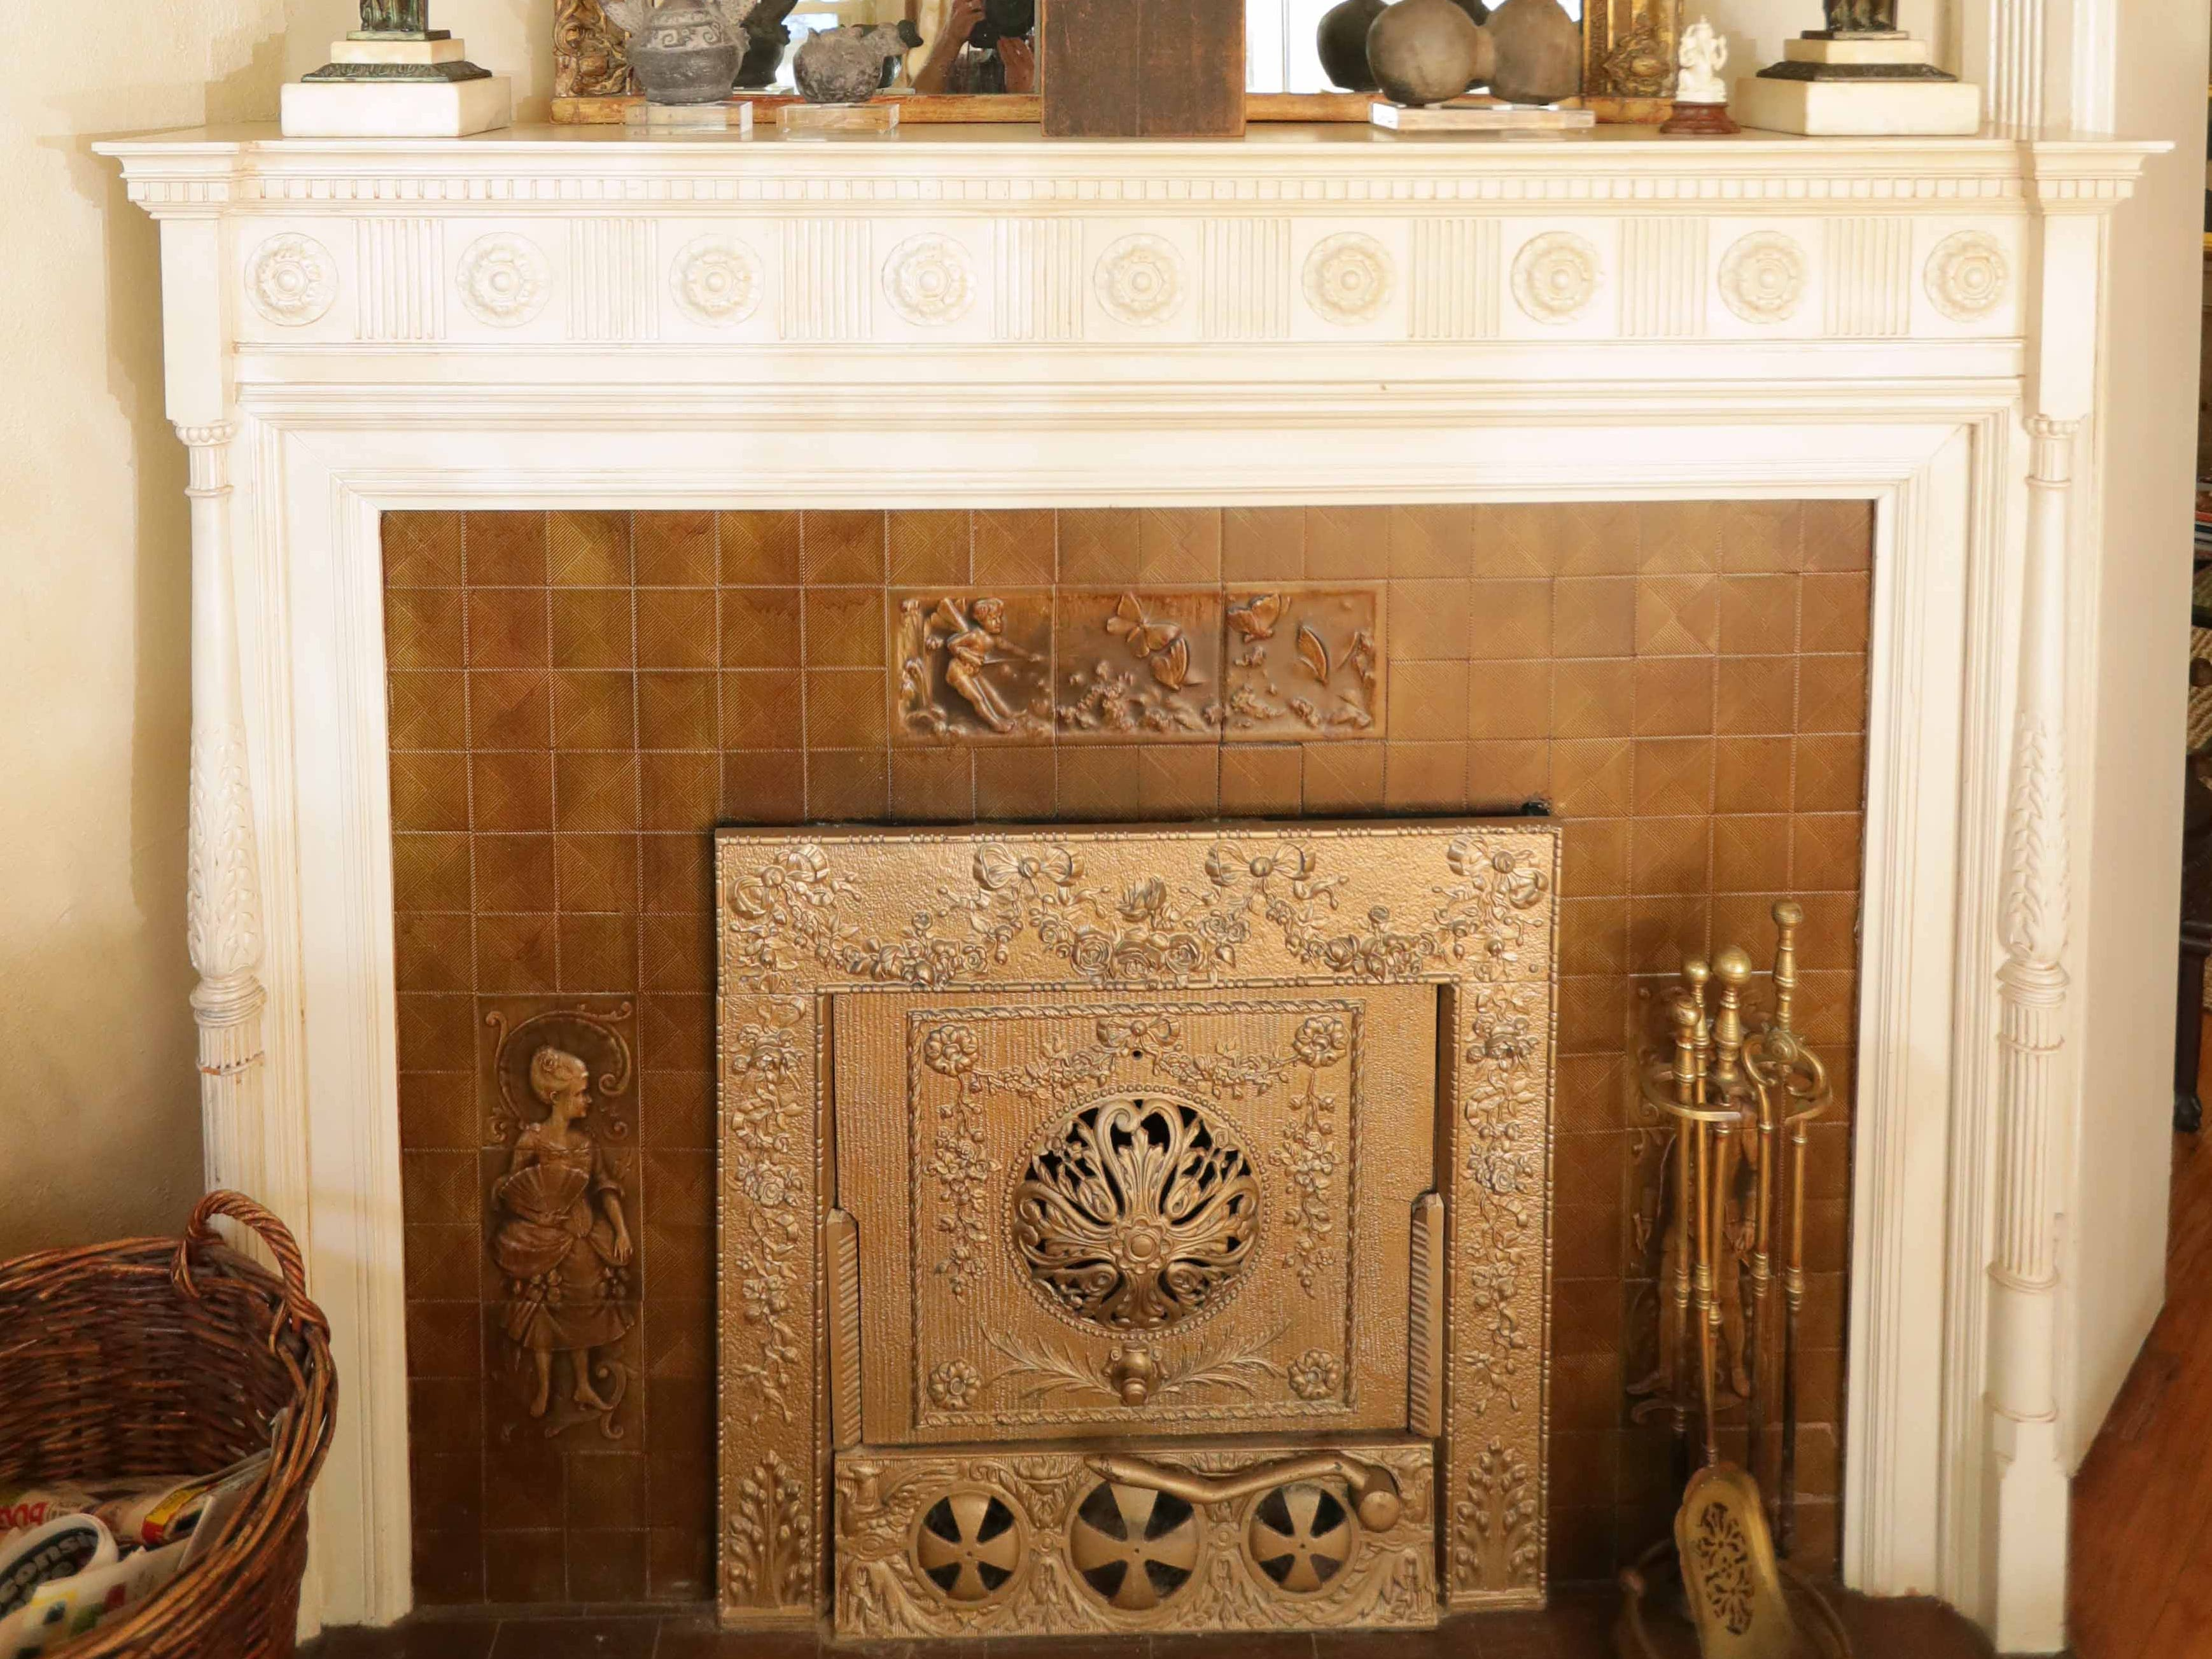 The working fireplace in the front parlor is surrounded by ceramic tile with a decorative steel plate covering and wooden mantel.